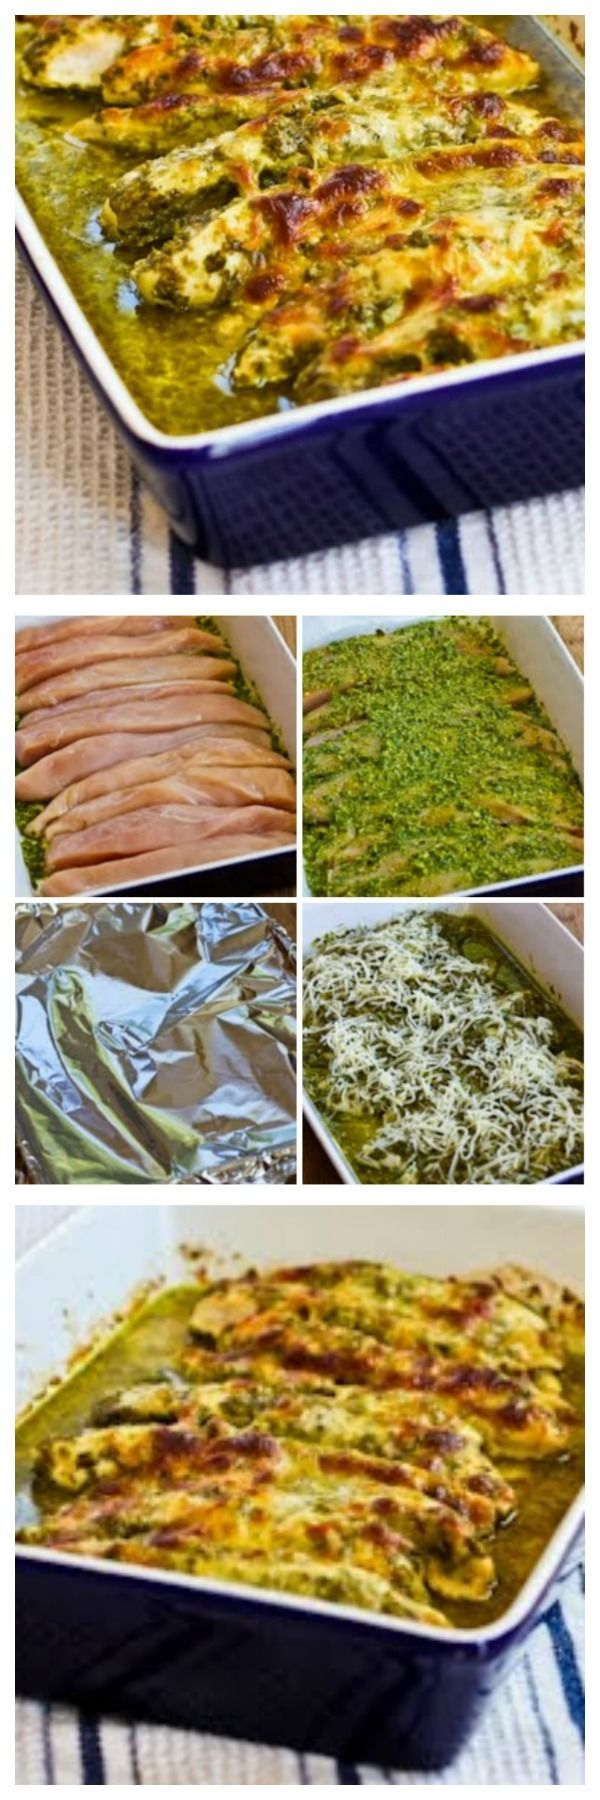 Baked Pesto Chicken is one of the most popular recipes on my blog, and this reci...